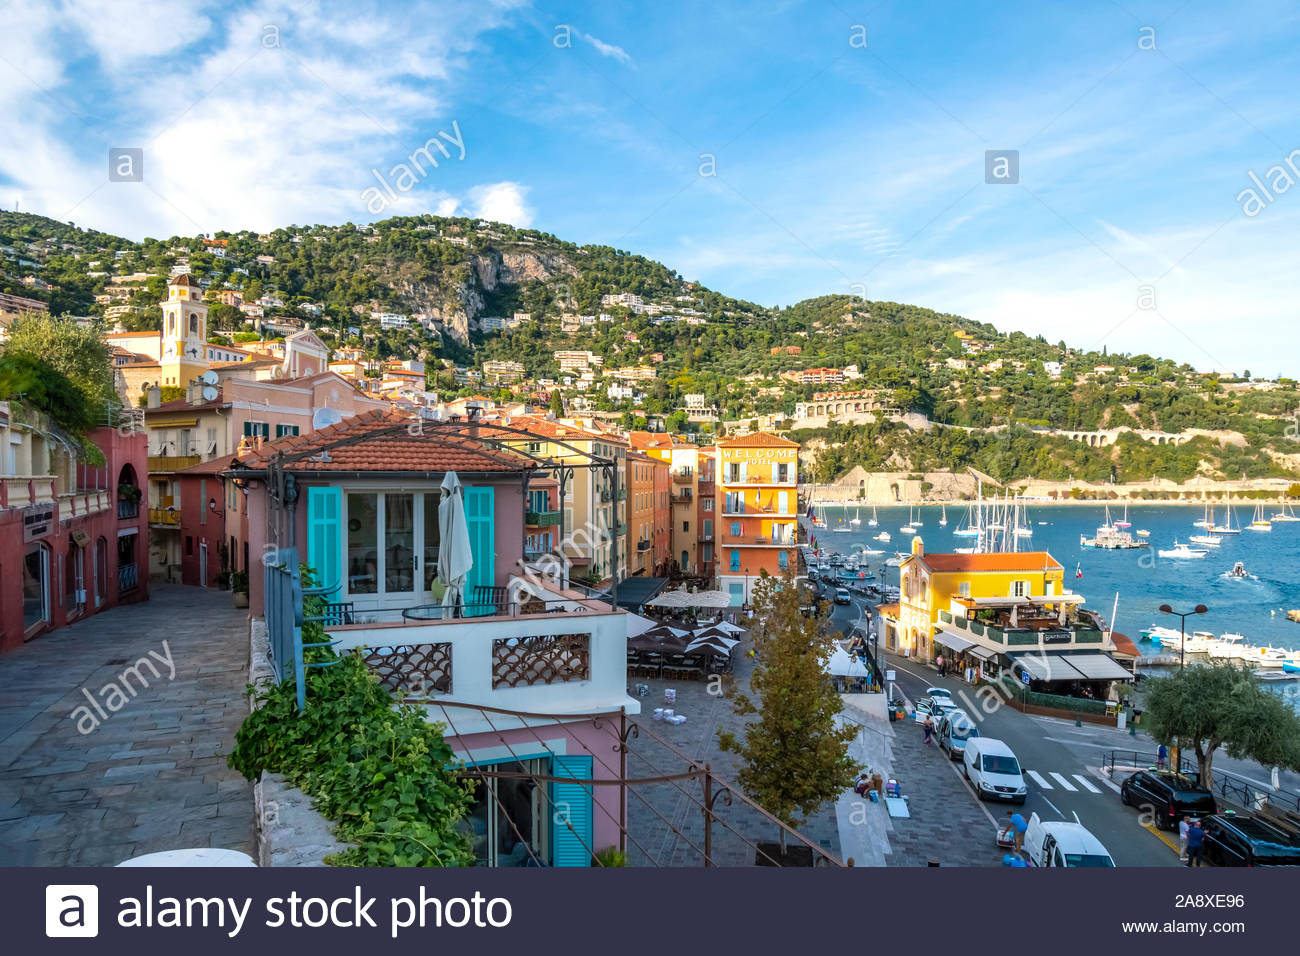 Scenic view of the colorful town, bay and marina of Villefranche Sur Mer, on the French Riviera coast of Southern France. Stock Photo